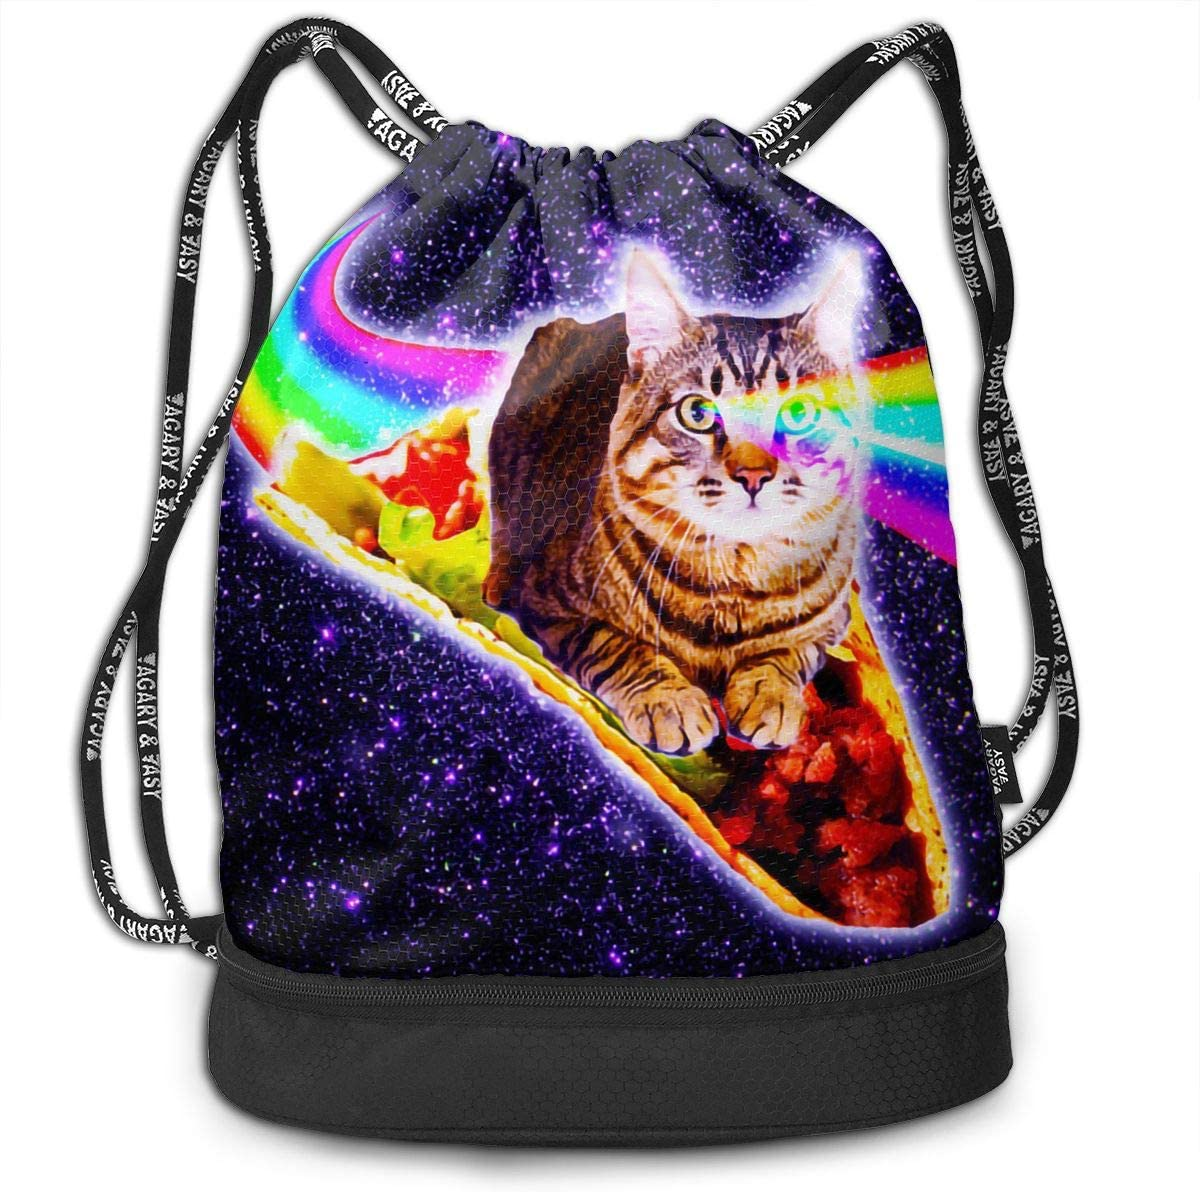 Drawstring Backpack Space Cat With Taco And Pizza Gym Bag